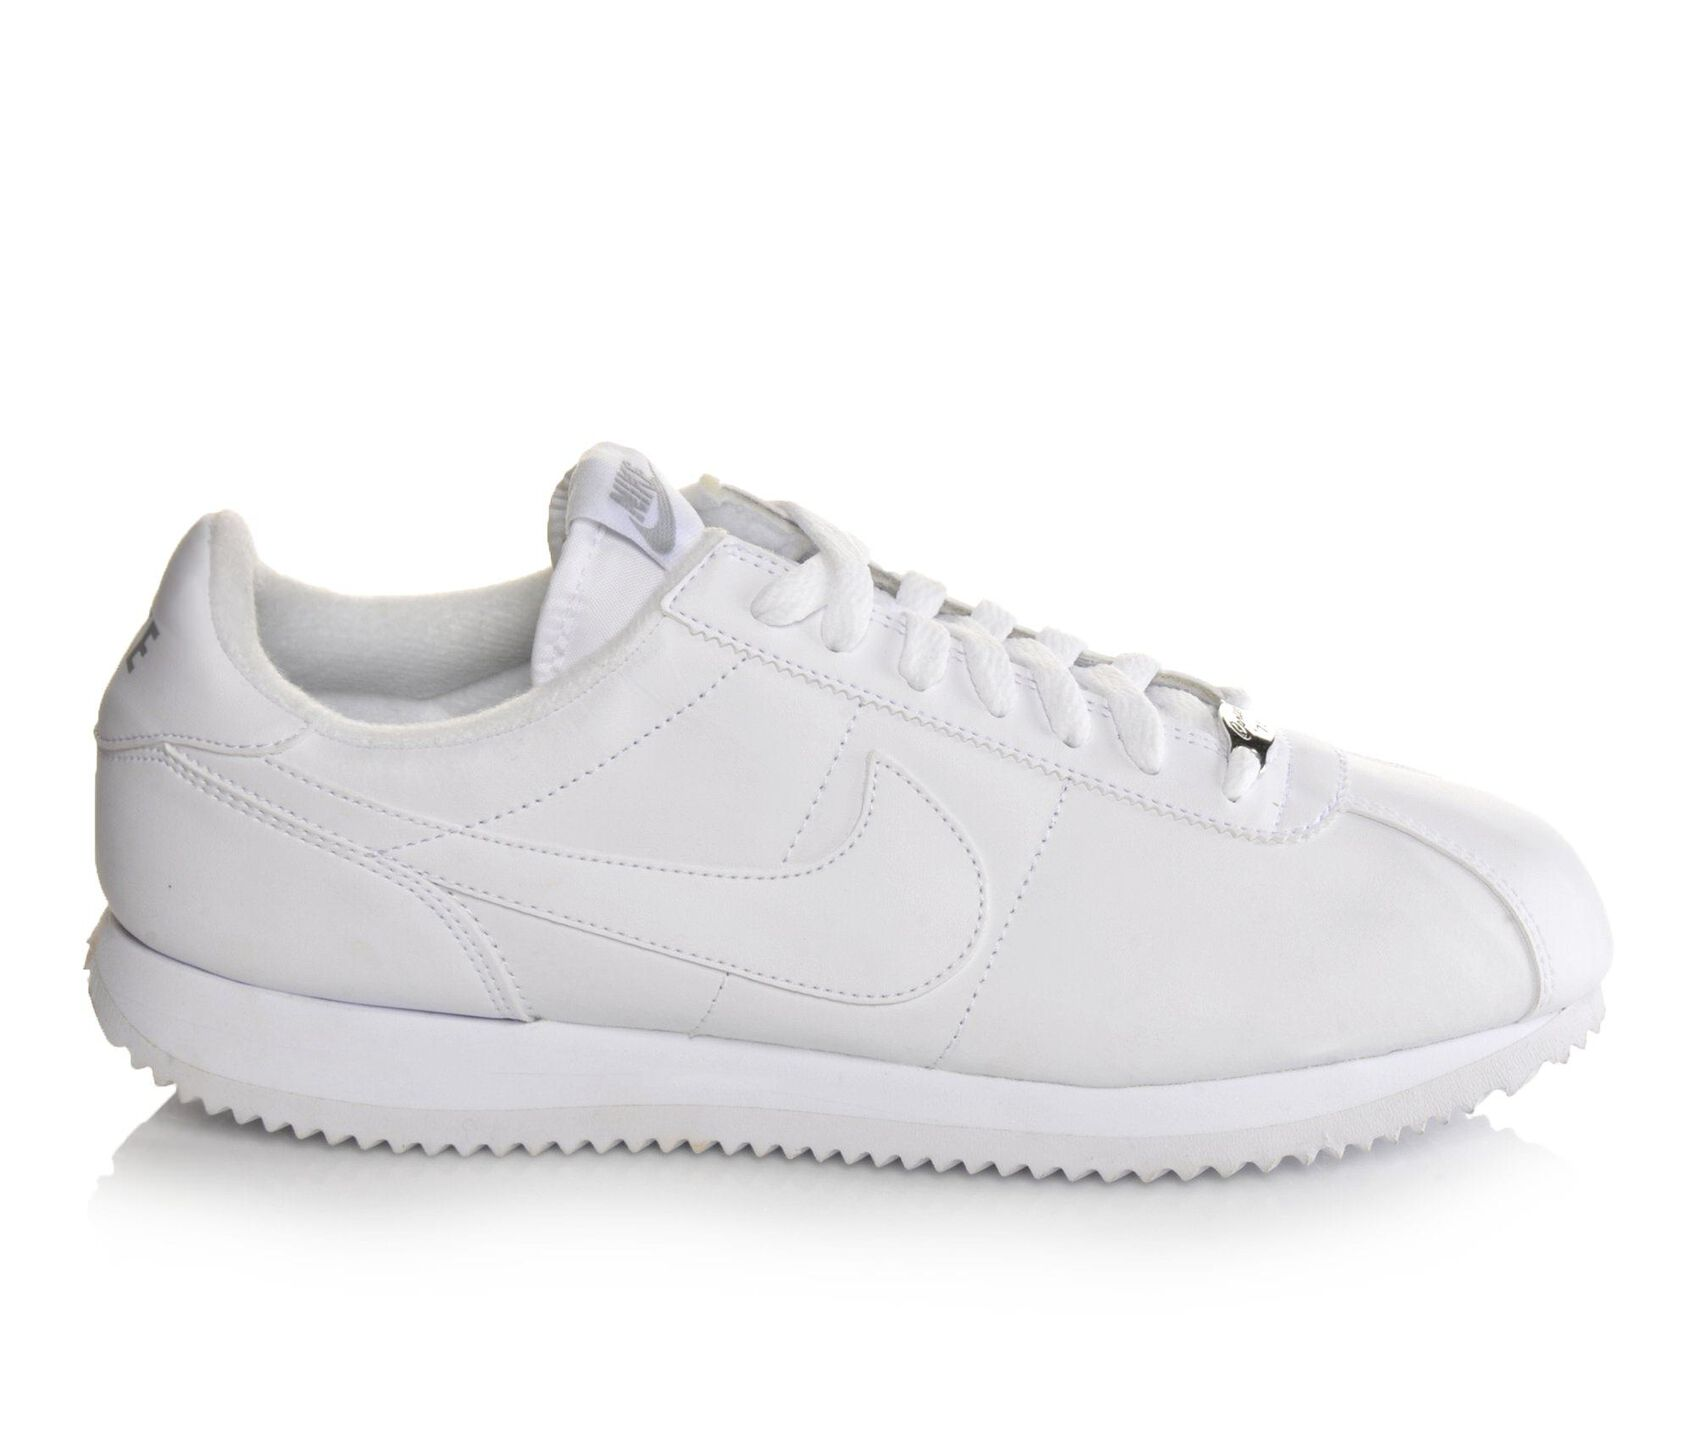 official photos 621d7 f172b Men's Nike Cortez Basic Leather Sneakers